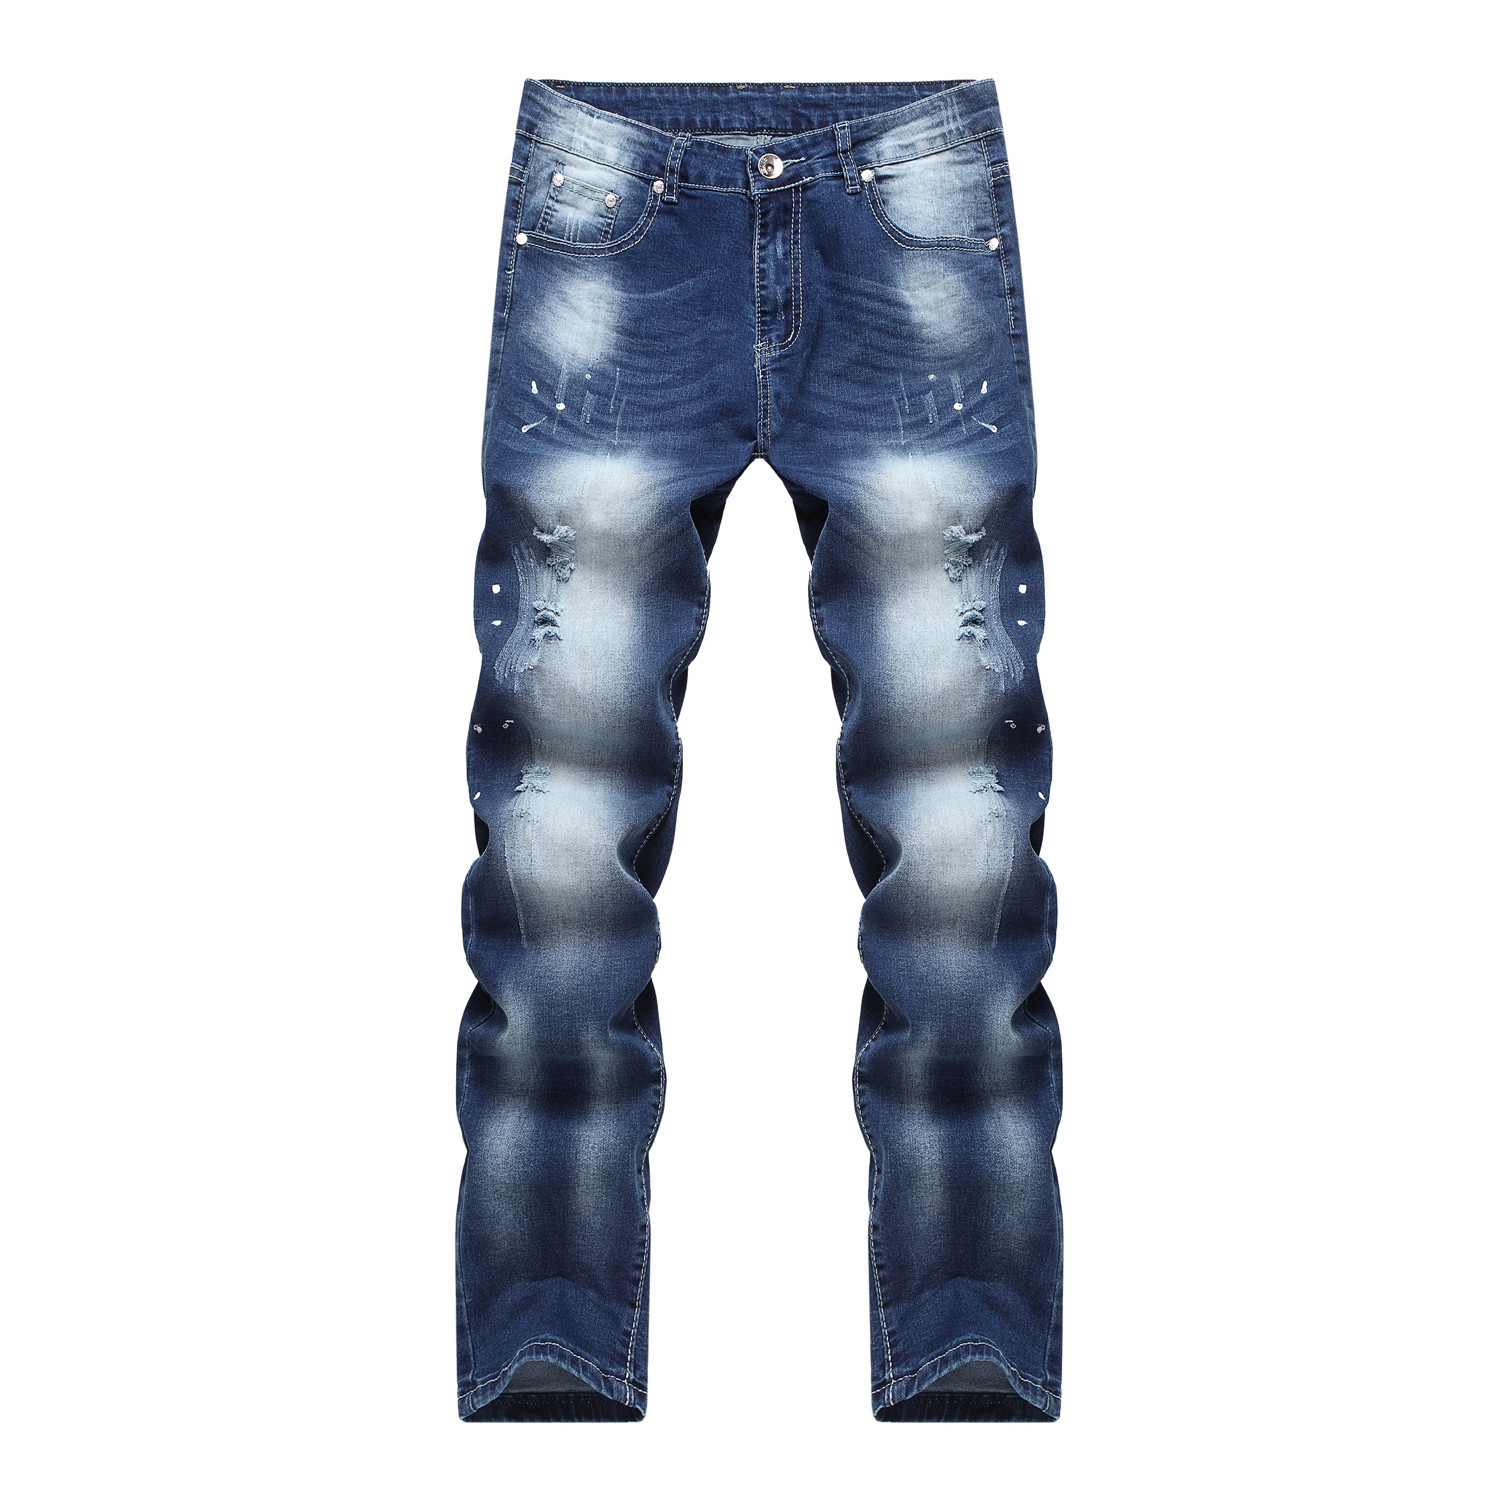 Autumn Motor Jeans Men Fear of God Biker Jeans Casual Trousers Mens Hip Hop Robin Ripped Jeans Mans Cotton Slim Fitness Pants